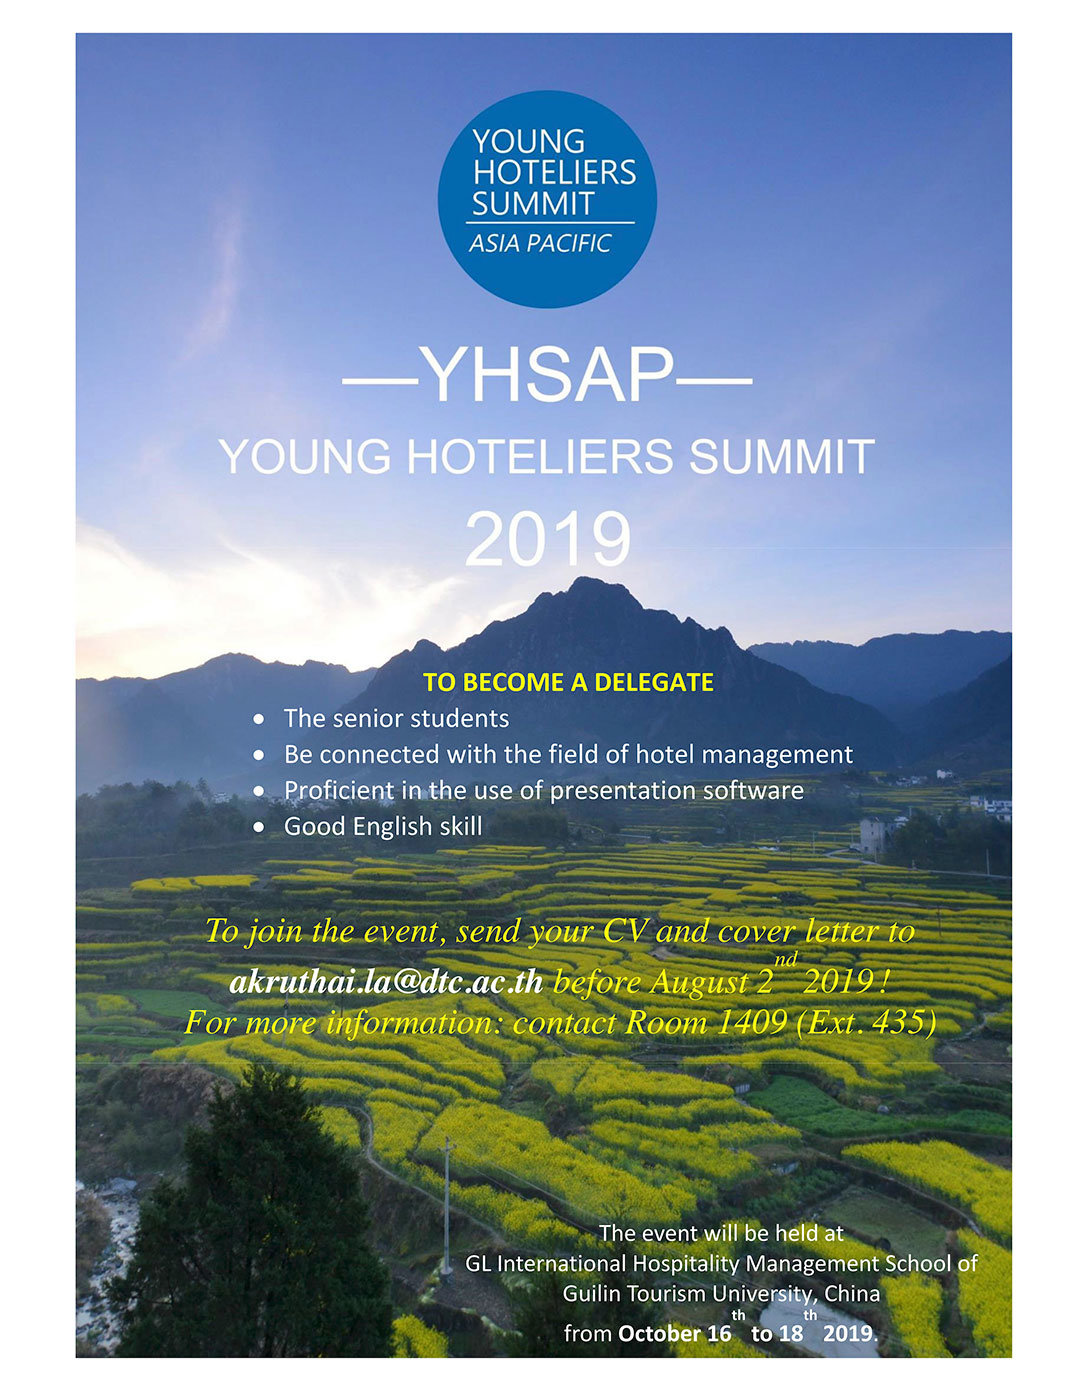 Young Hotelier Summit Asia Pacific (YHSAP) 2019 - Dusit Thani College